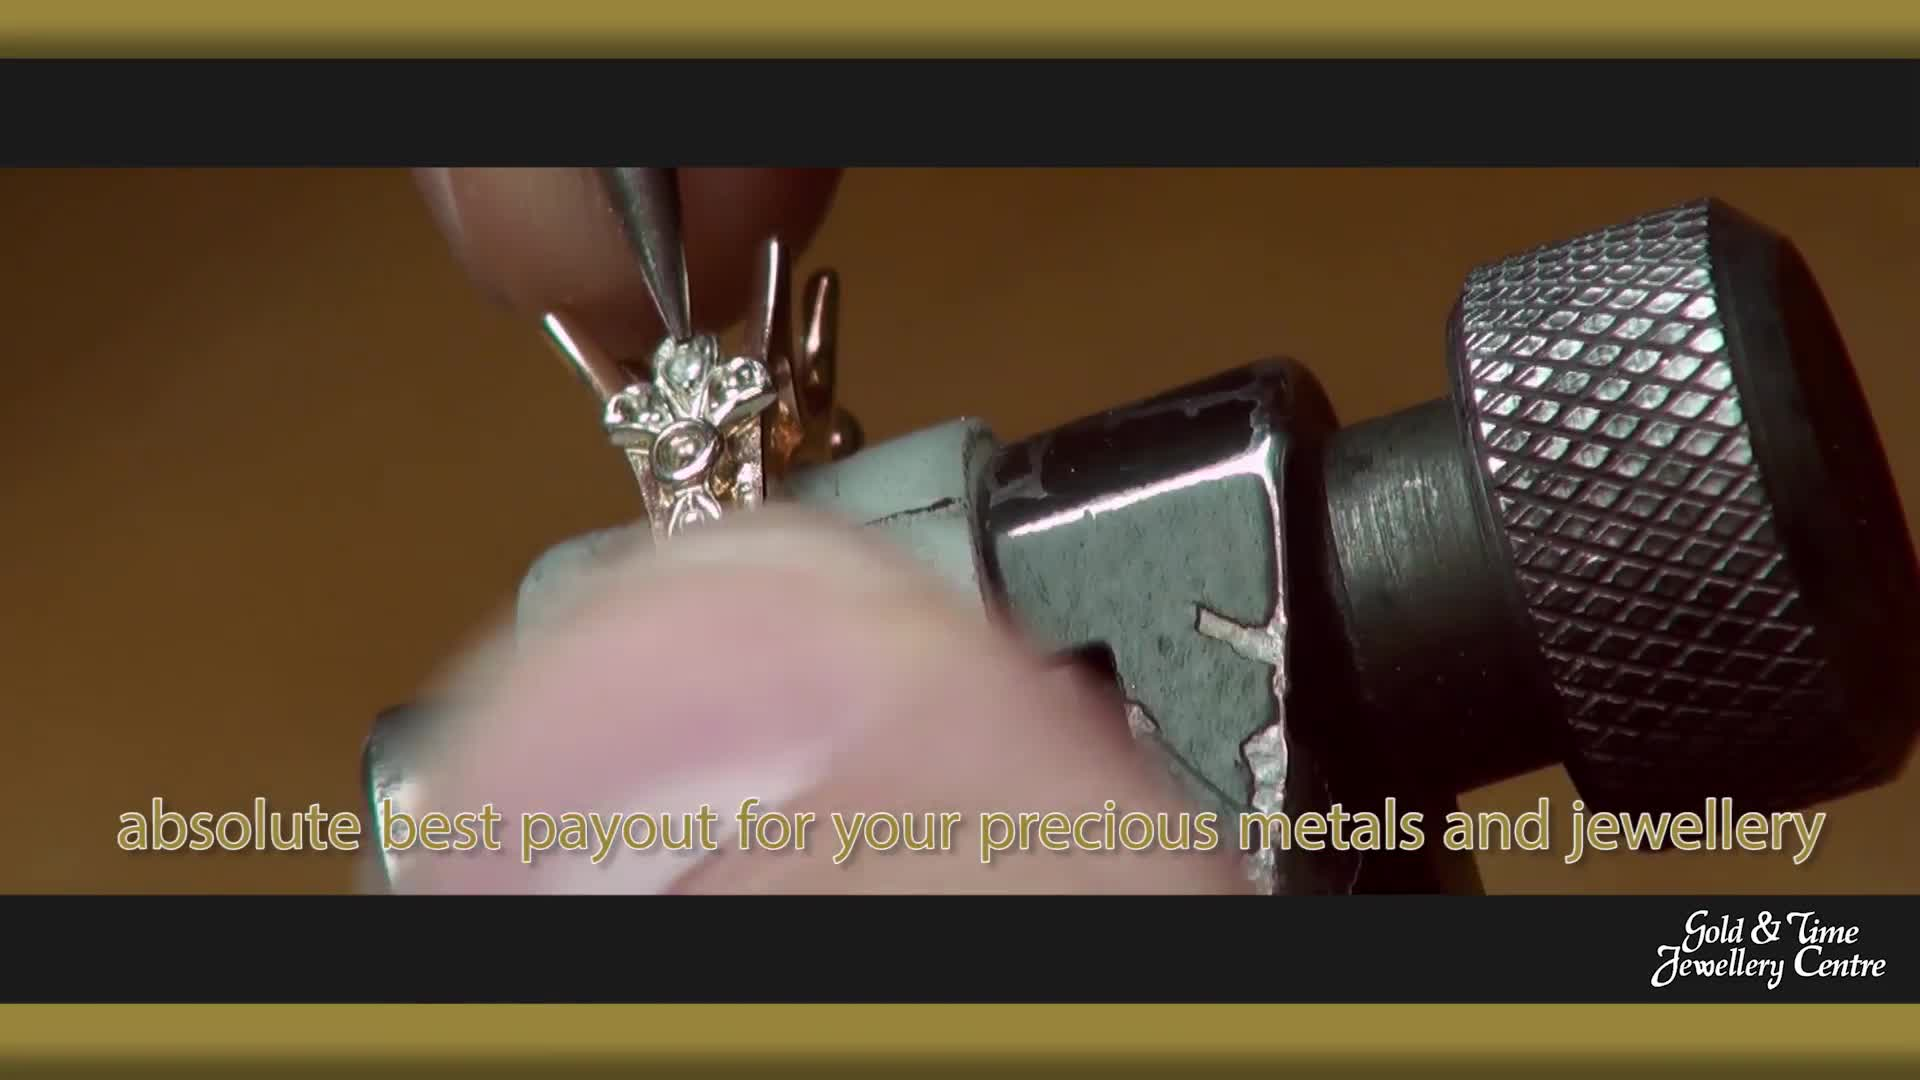 Gold & Time Jewellery Centre - Jewellery Buyers - 905-276-6467